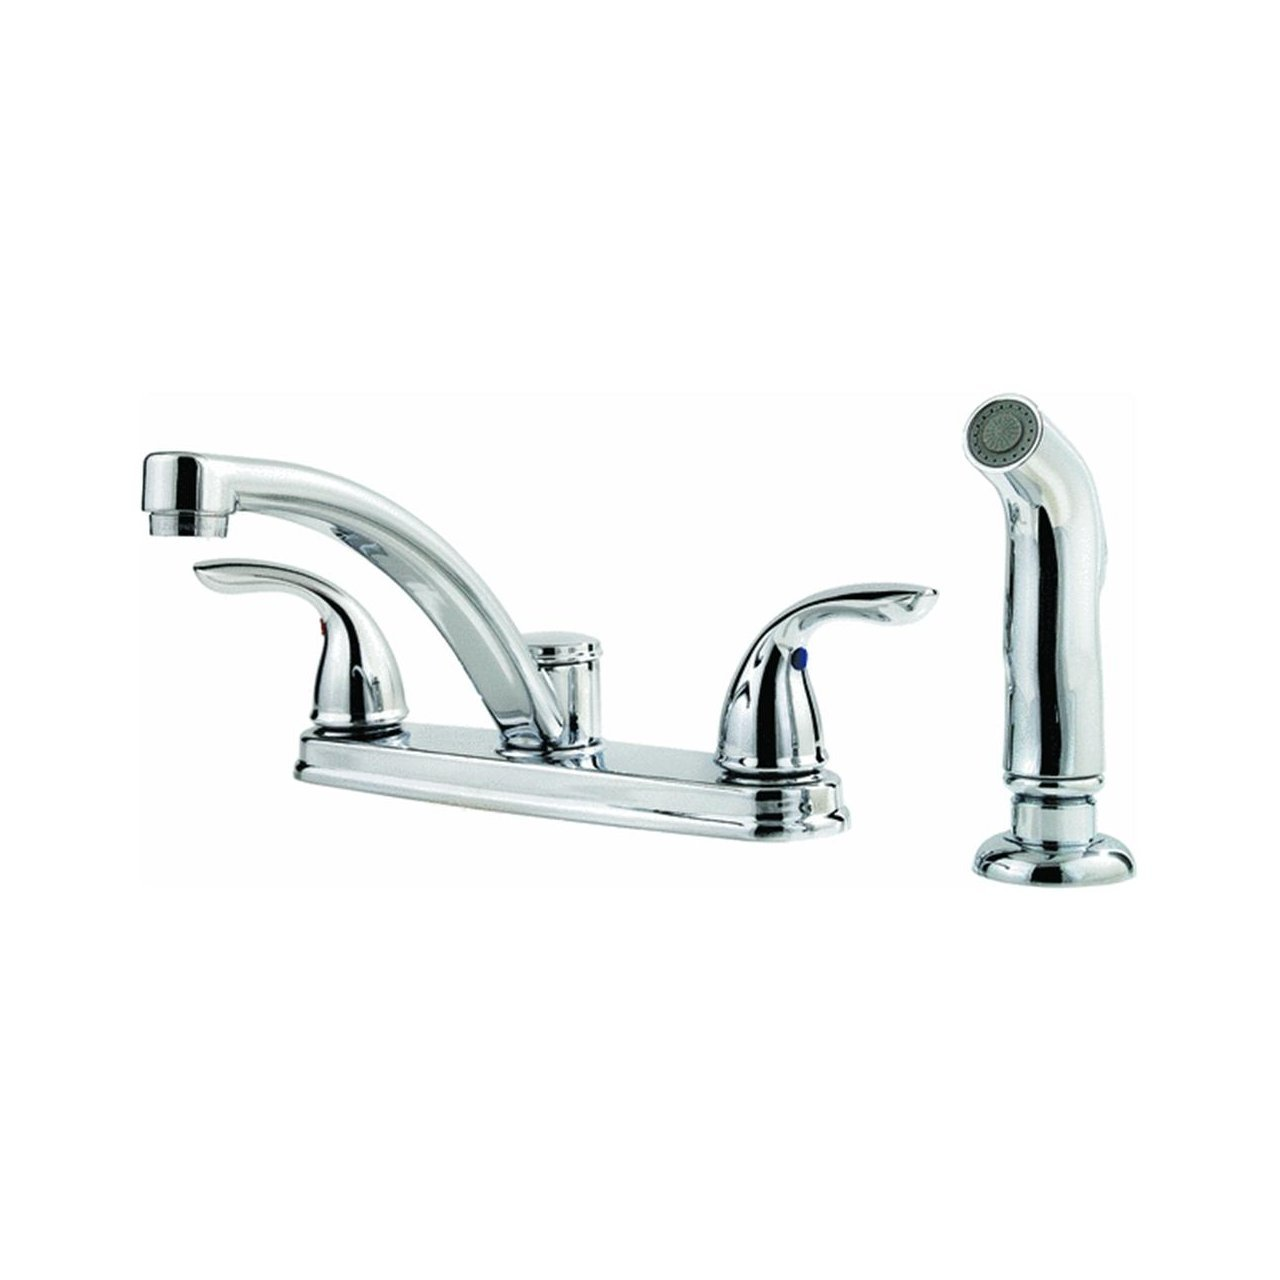 Pfister F-035-4THC Delton 2-Handle Kitchen Faucet with Side Spray, Polished Chrome, 2.2 gpm